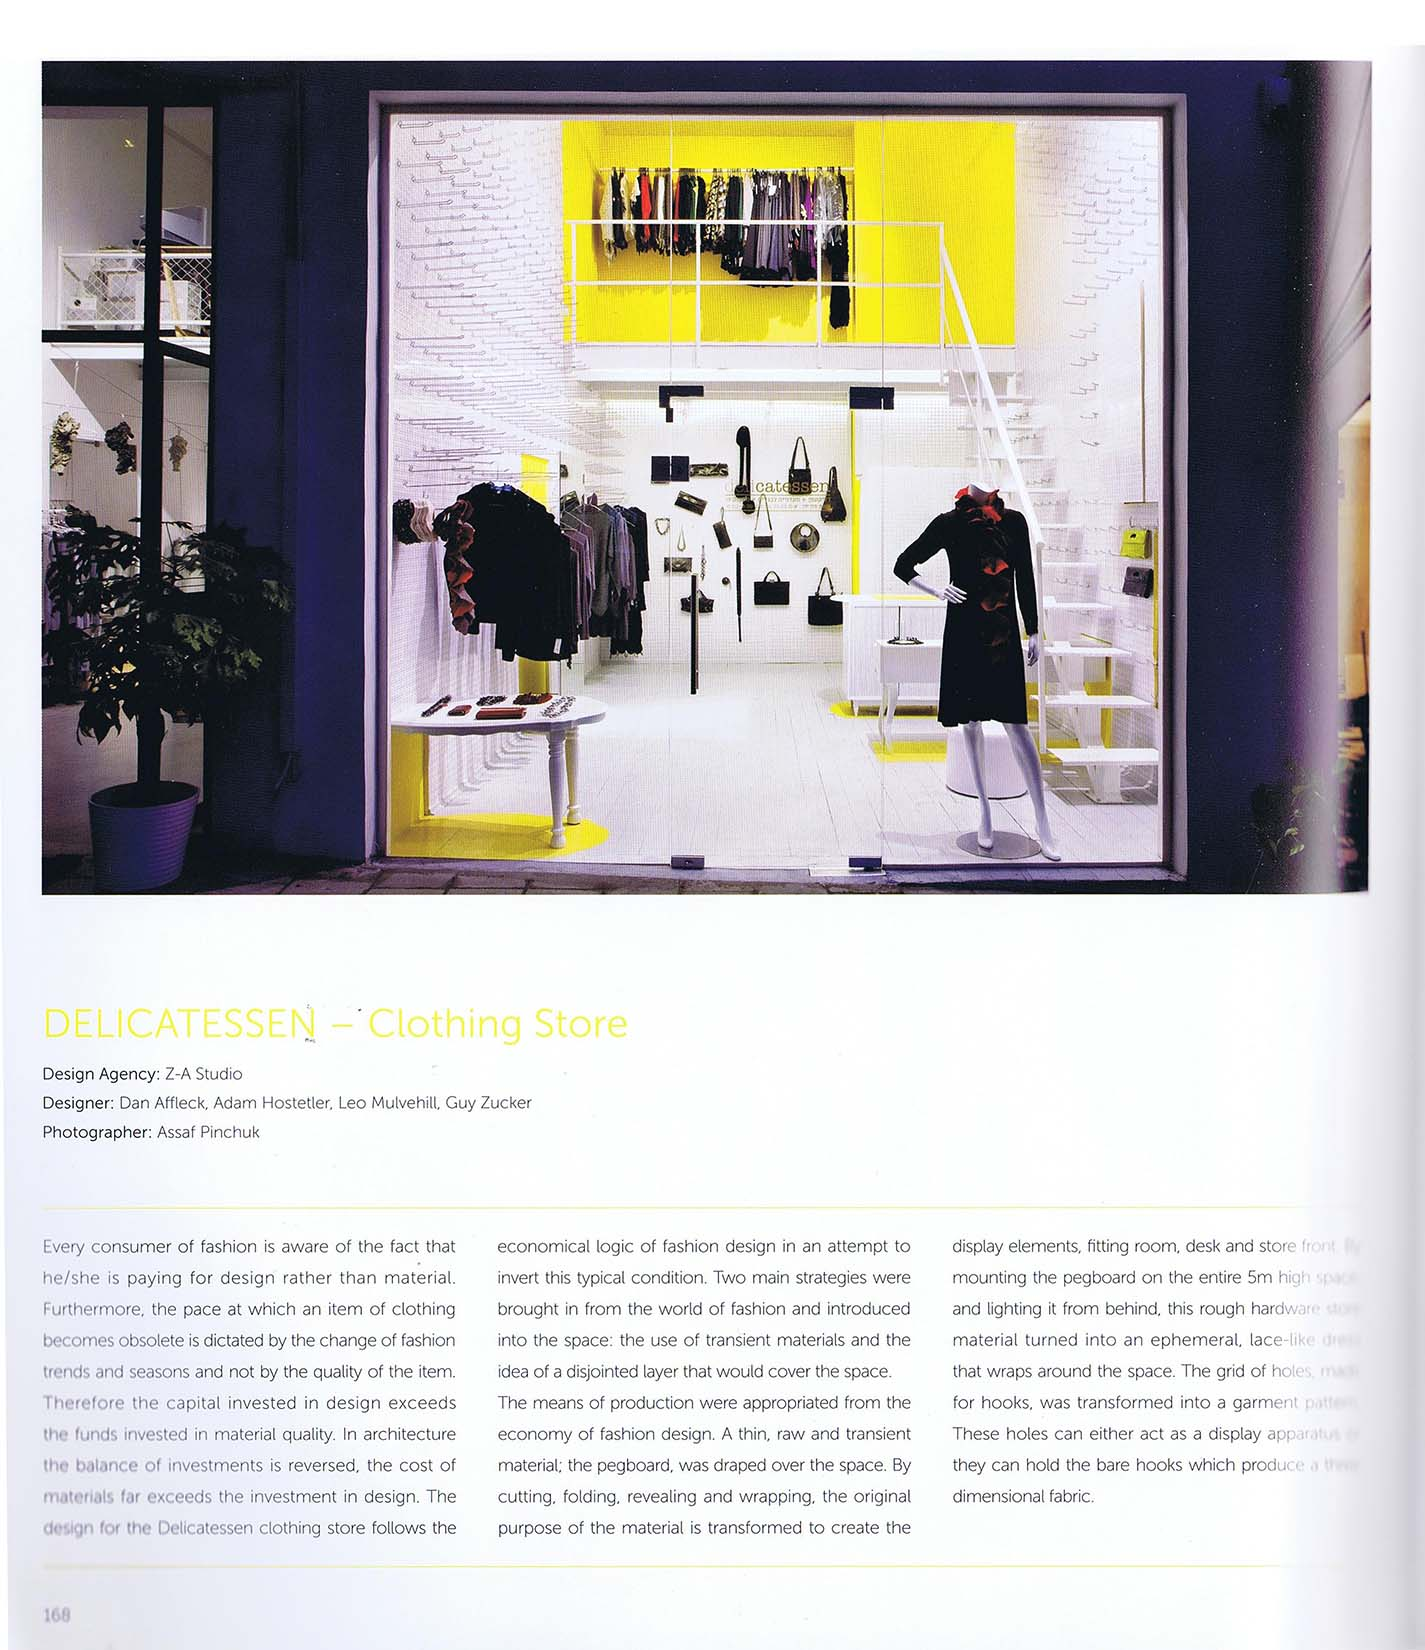 2012_Color Space_Delicatessen-Clothing Store_01